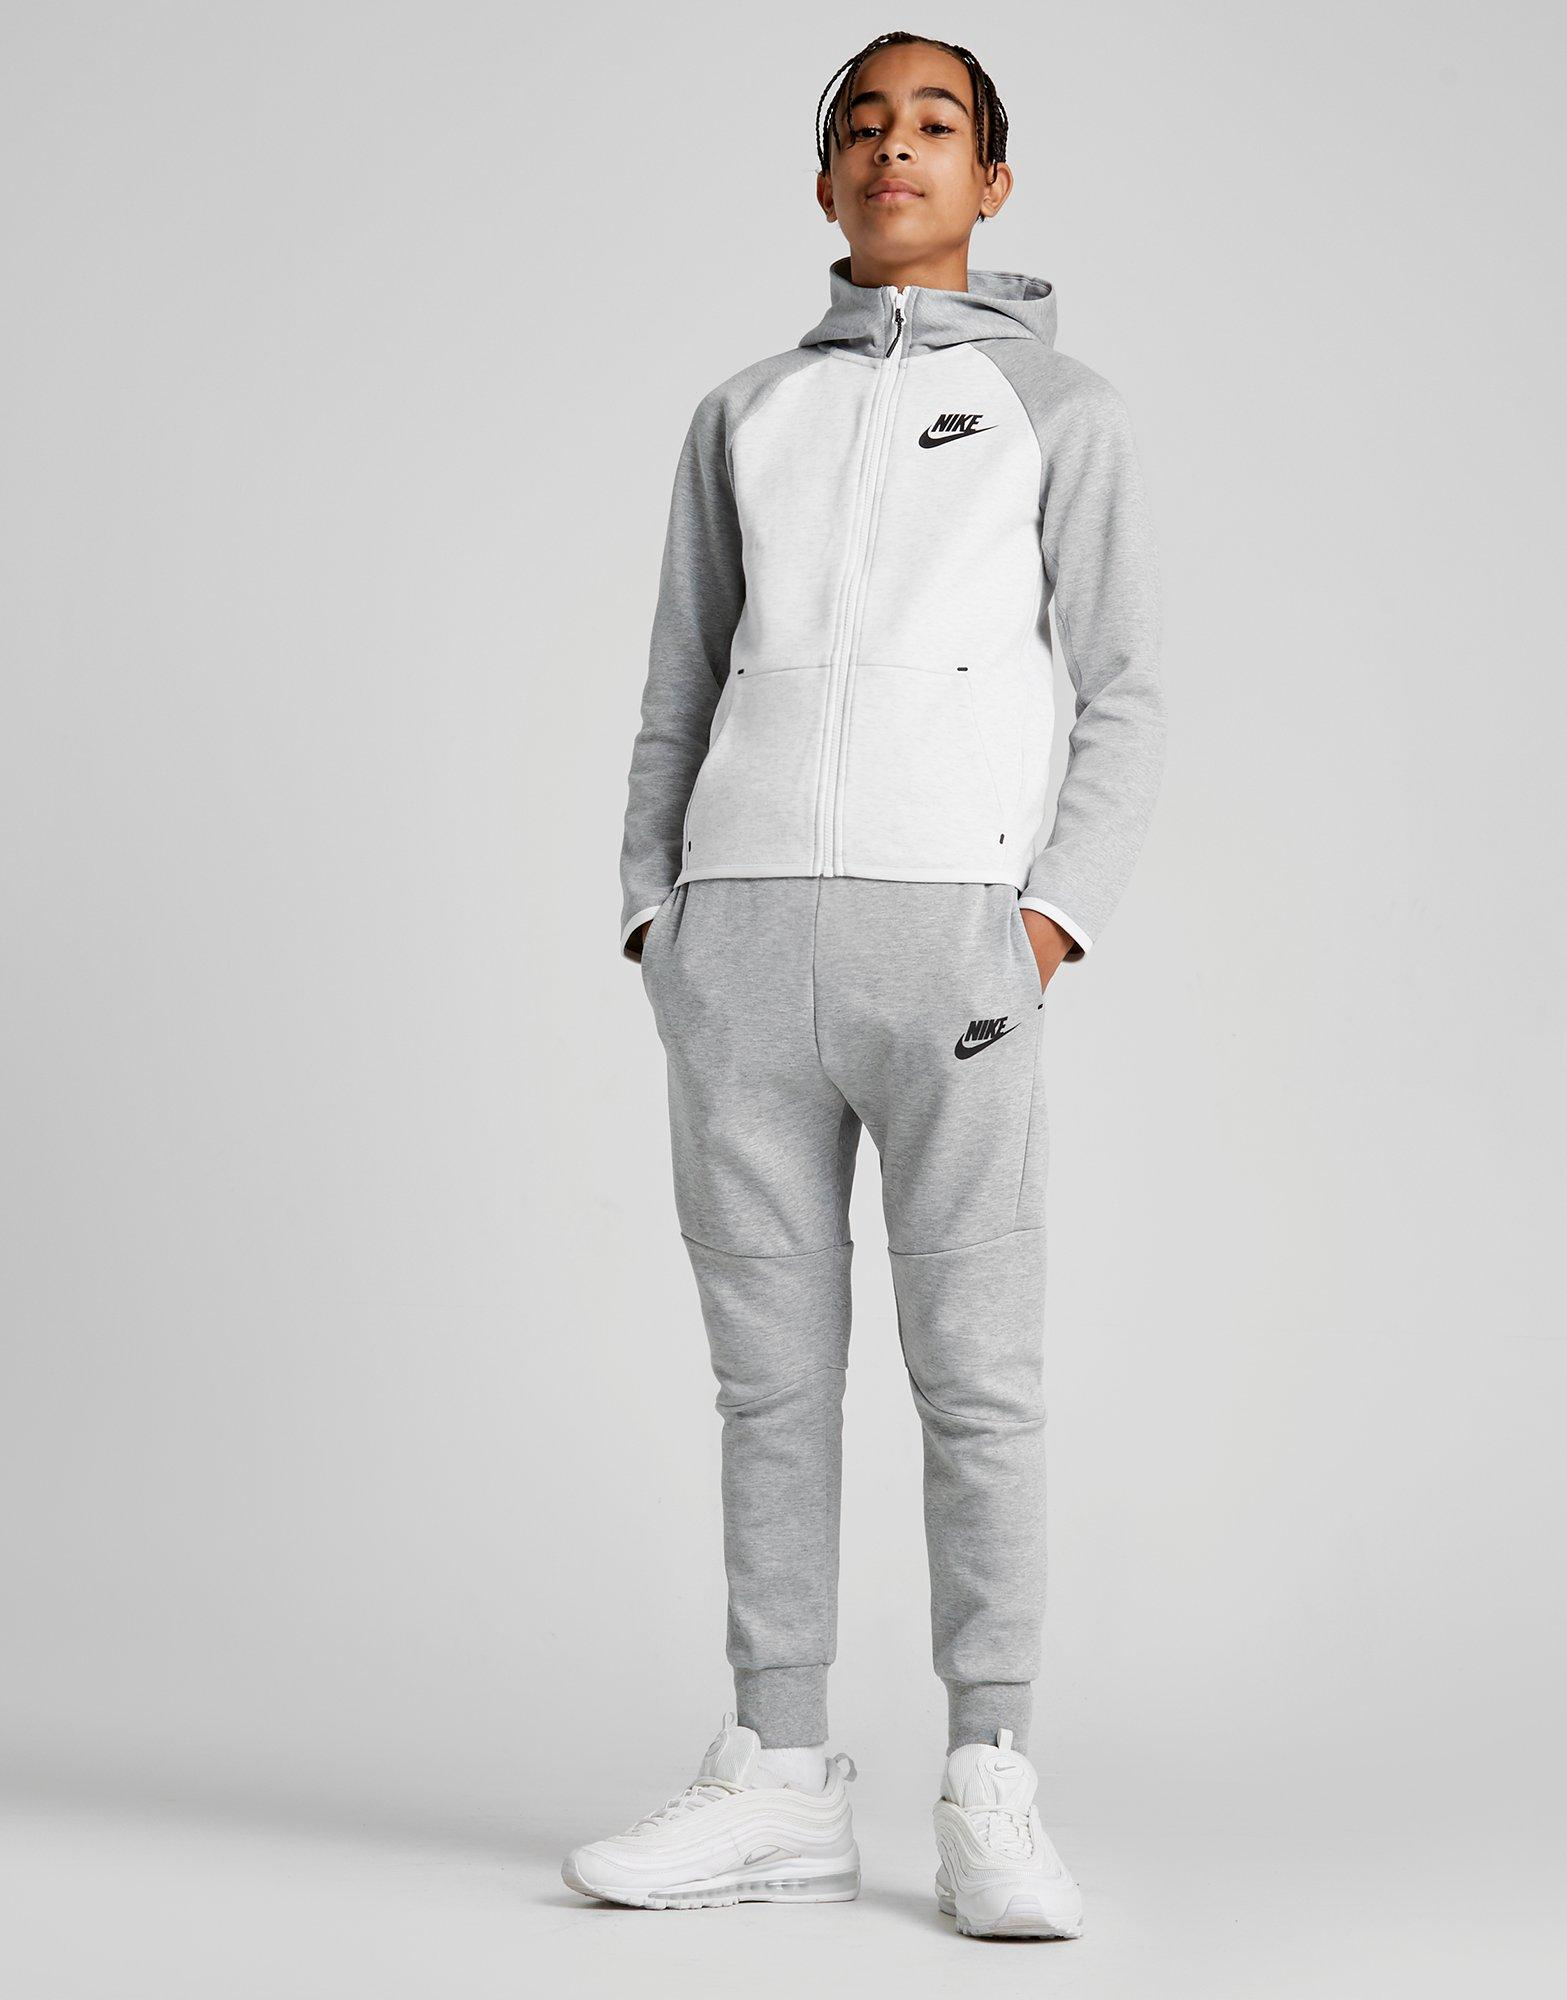 Childrens Nike Tech Tracksuit Shop Clothing Shoes Online